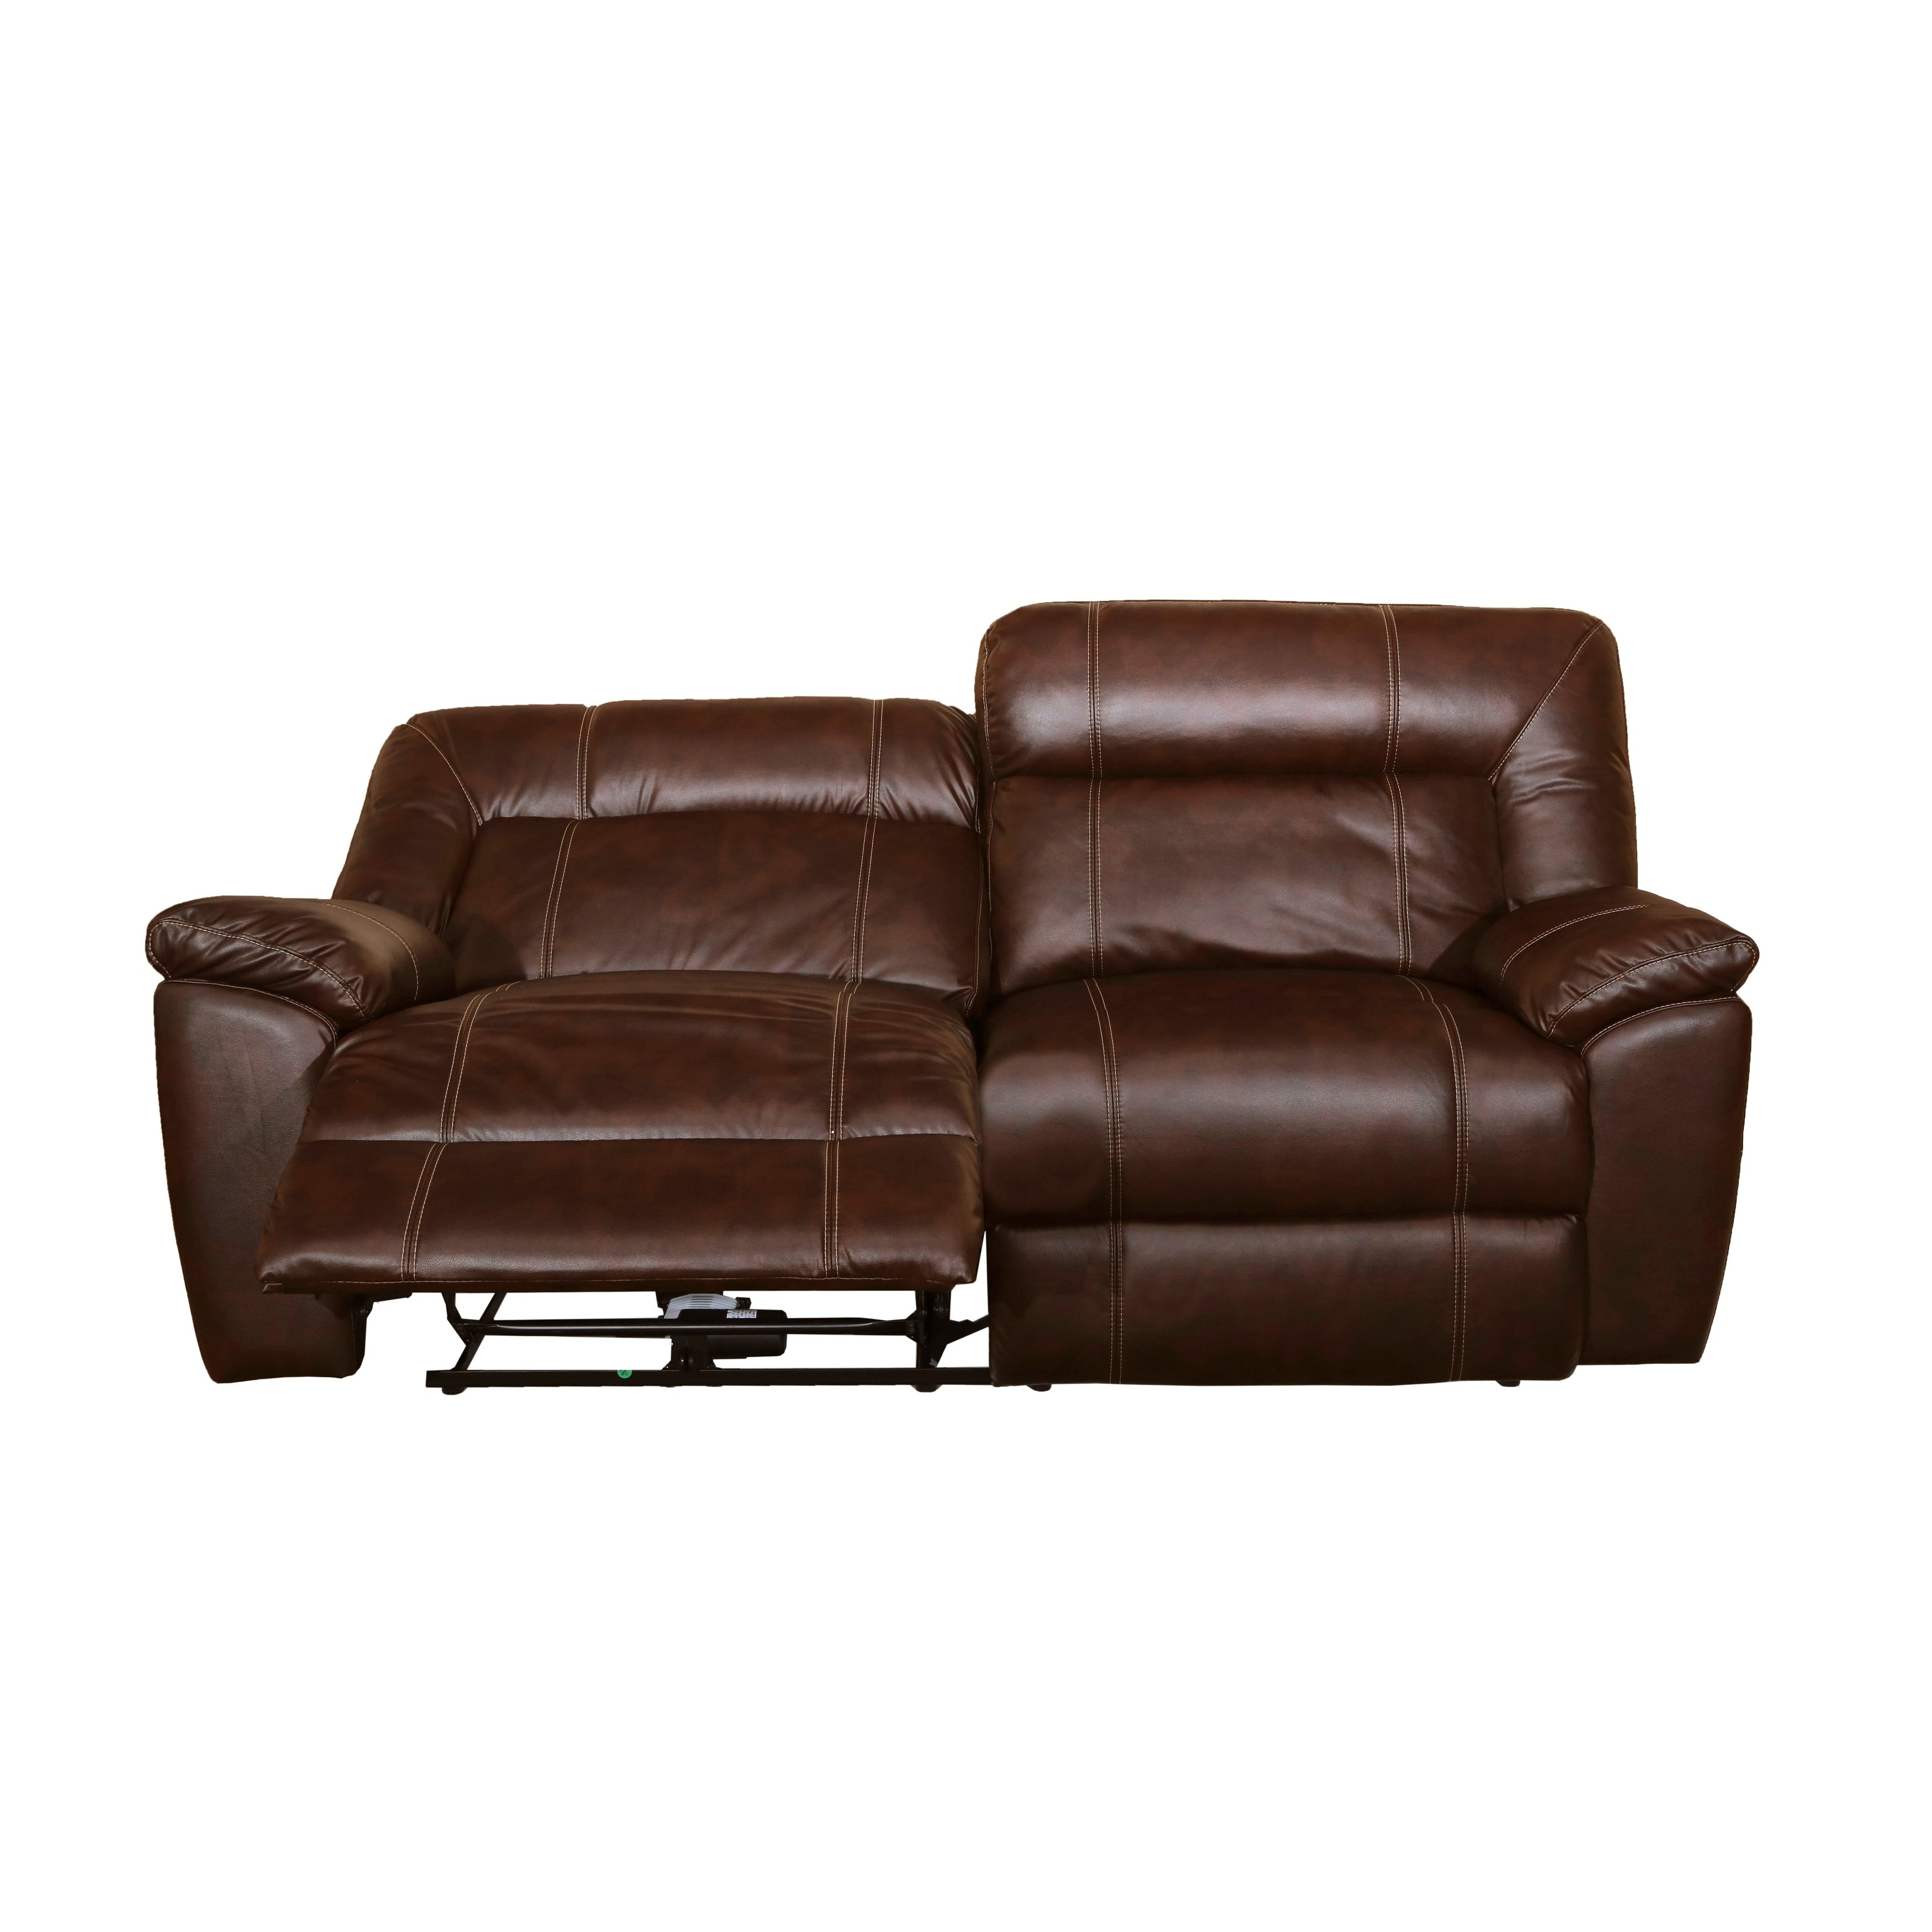 oversized with chair latest covers am lift recliner incontinence home ebay furnishings kitchen cover